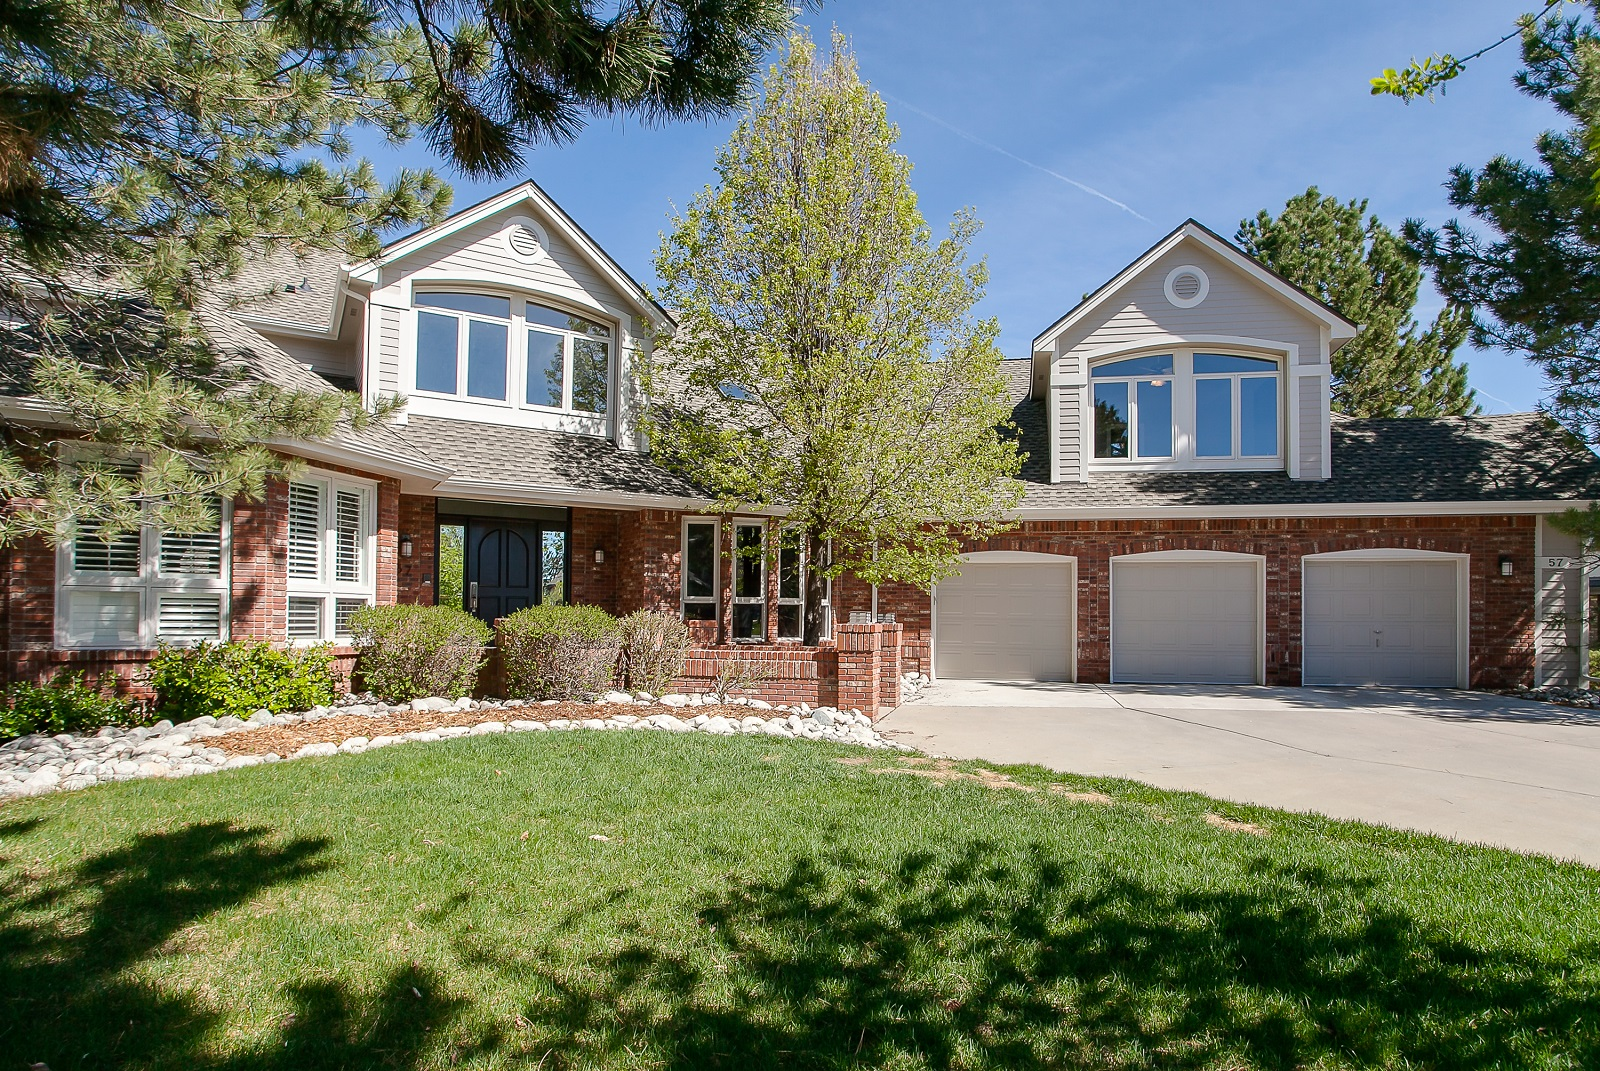 Single Family Home for Sale at 57 Falcon Hills 57 Falcon Hills Drive Highlands Ranch, Colorado, 80126 United States